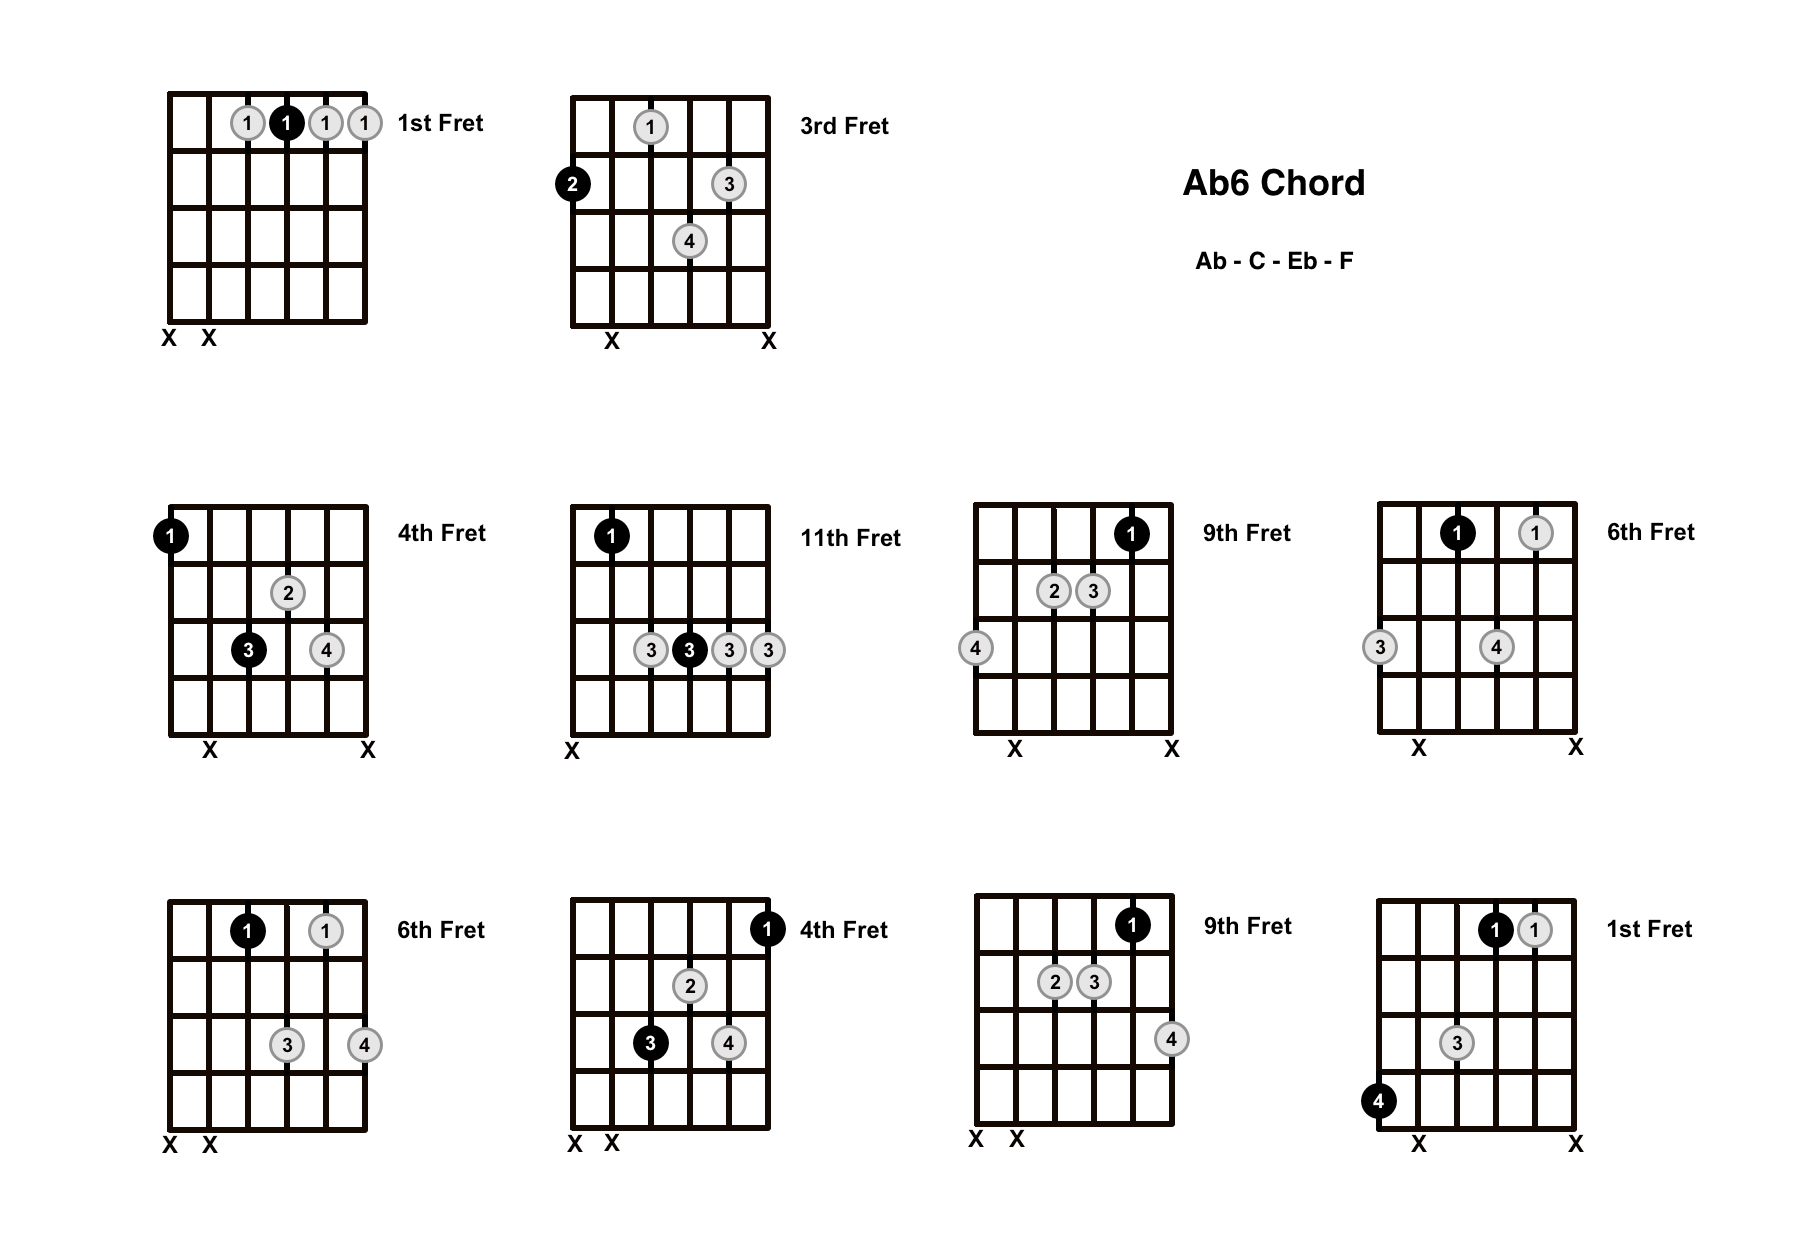 Ab6 Chord On The Guitar (A Flat Major 6) – Diagrams, Finger Positions and Theory